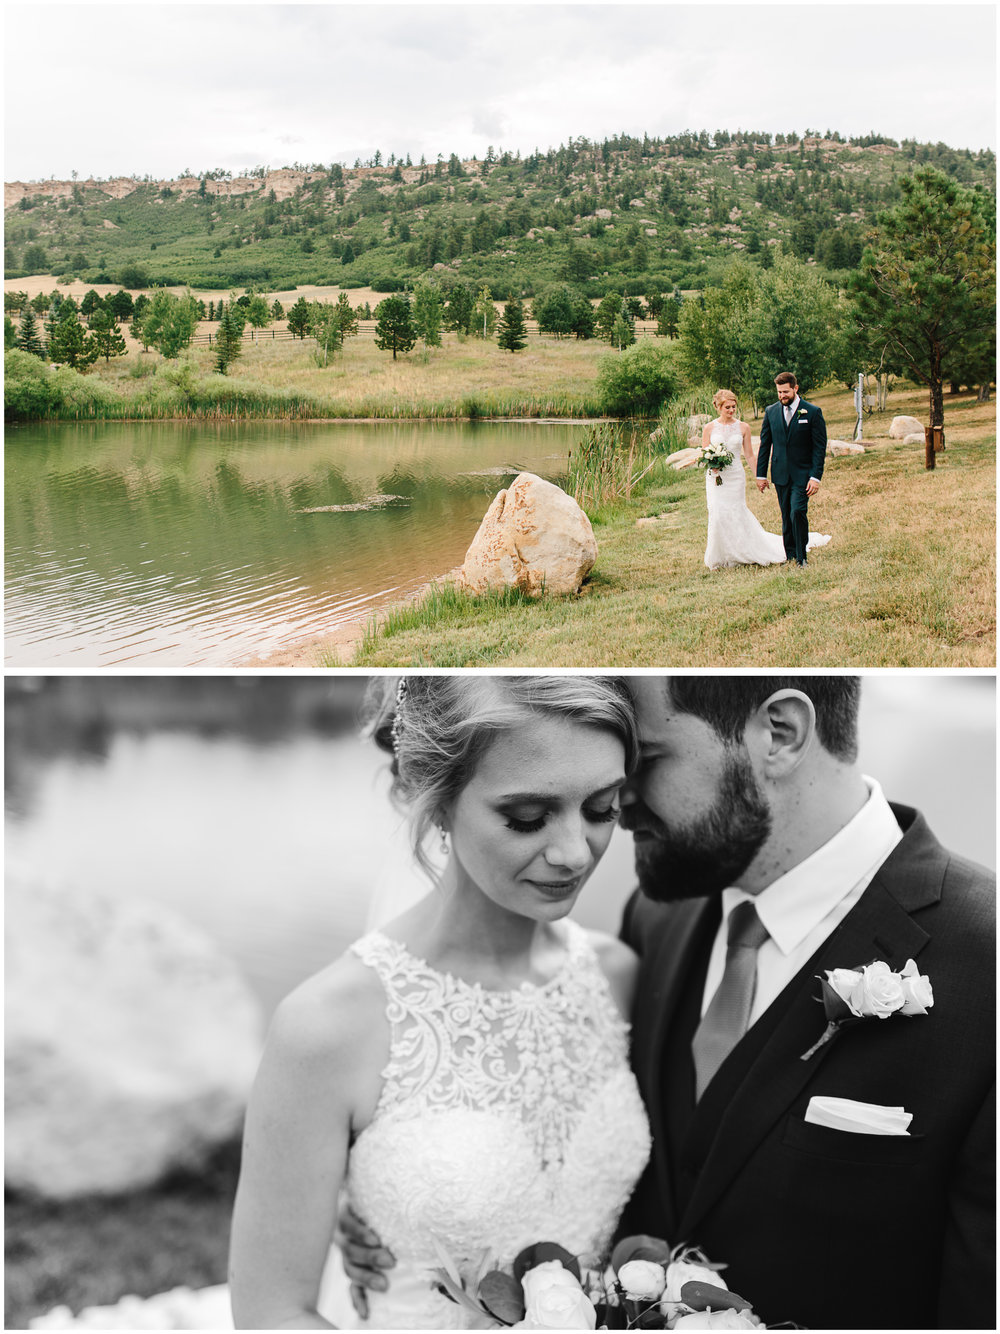 Spruce_Mountain_Ranch_Wedding_44.jpg